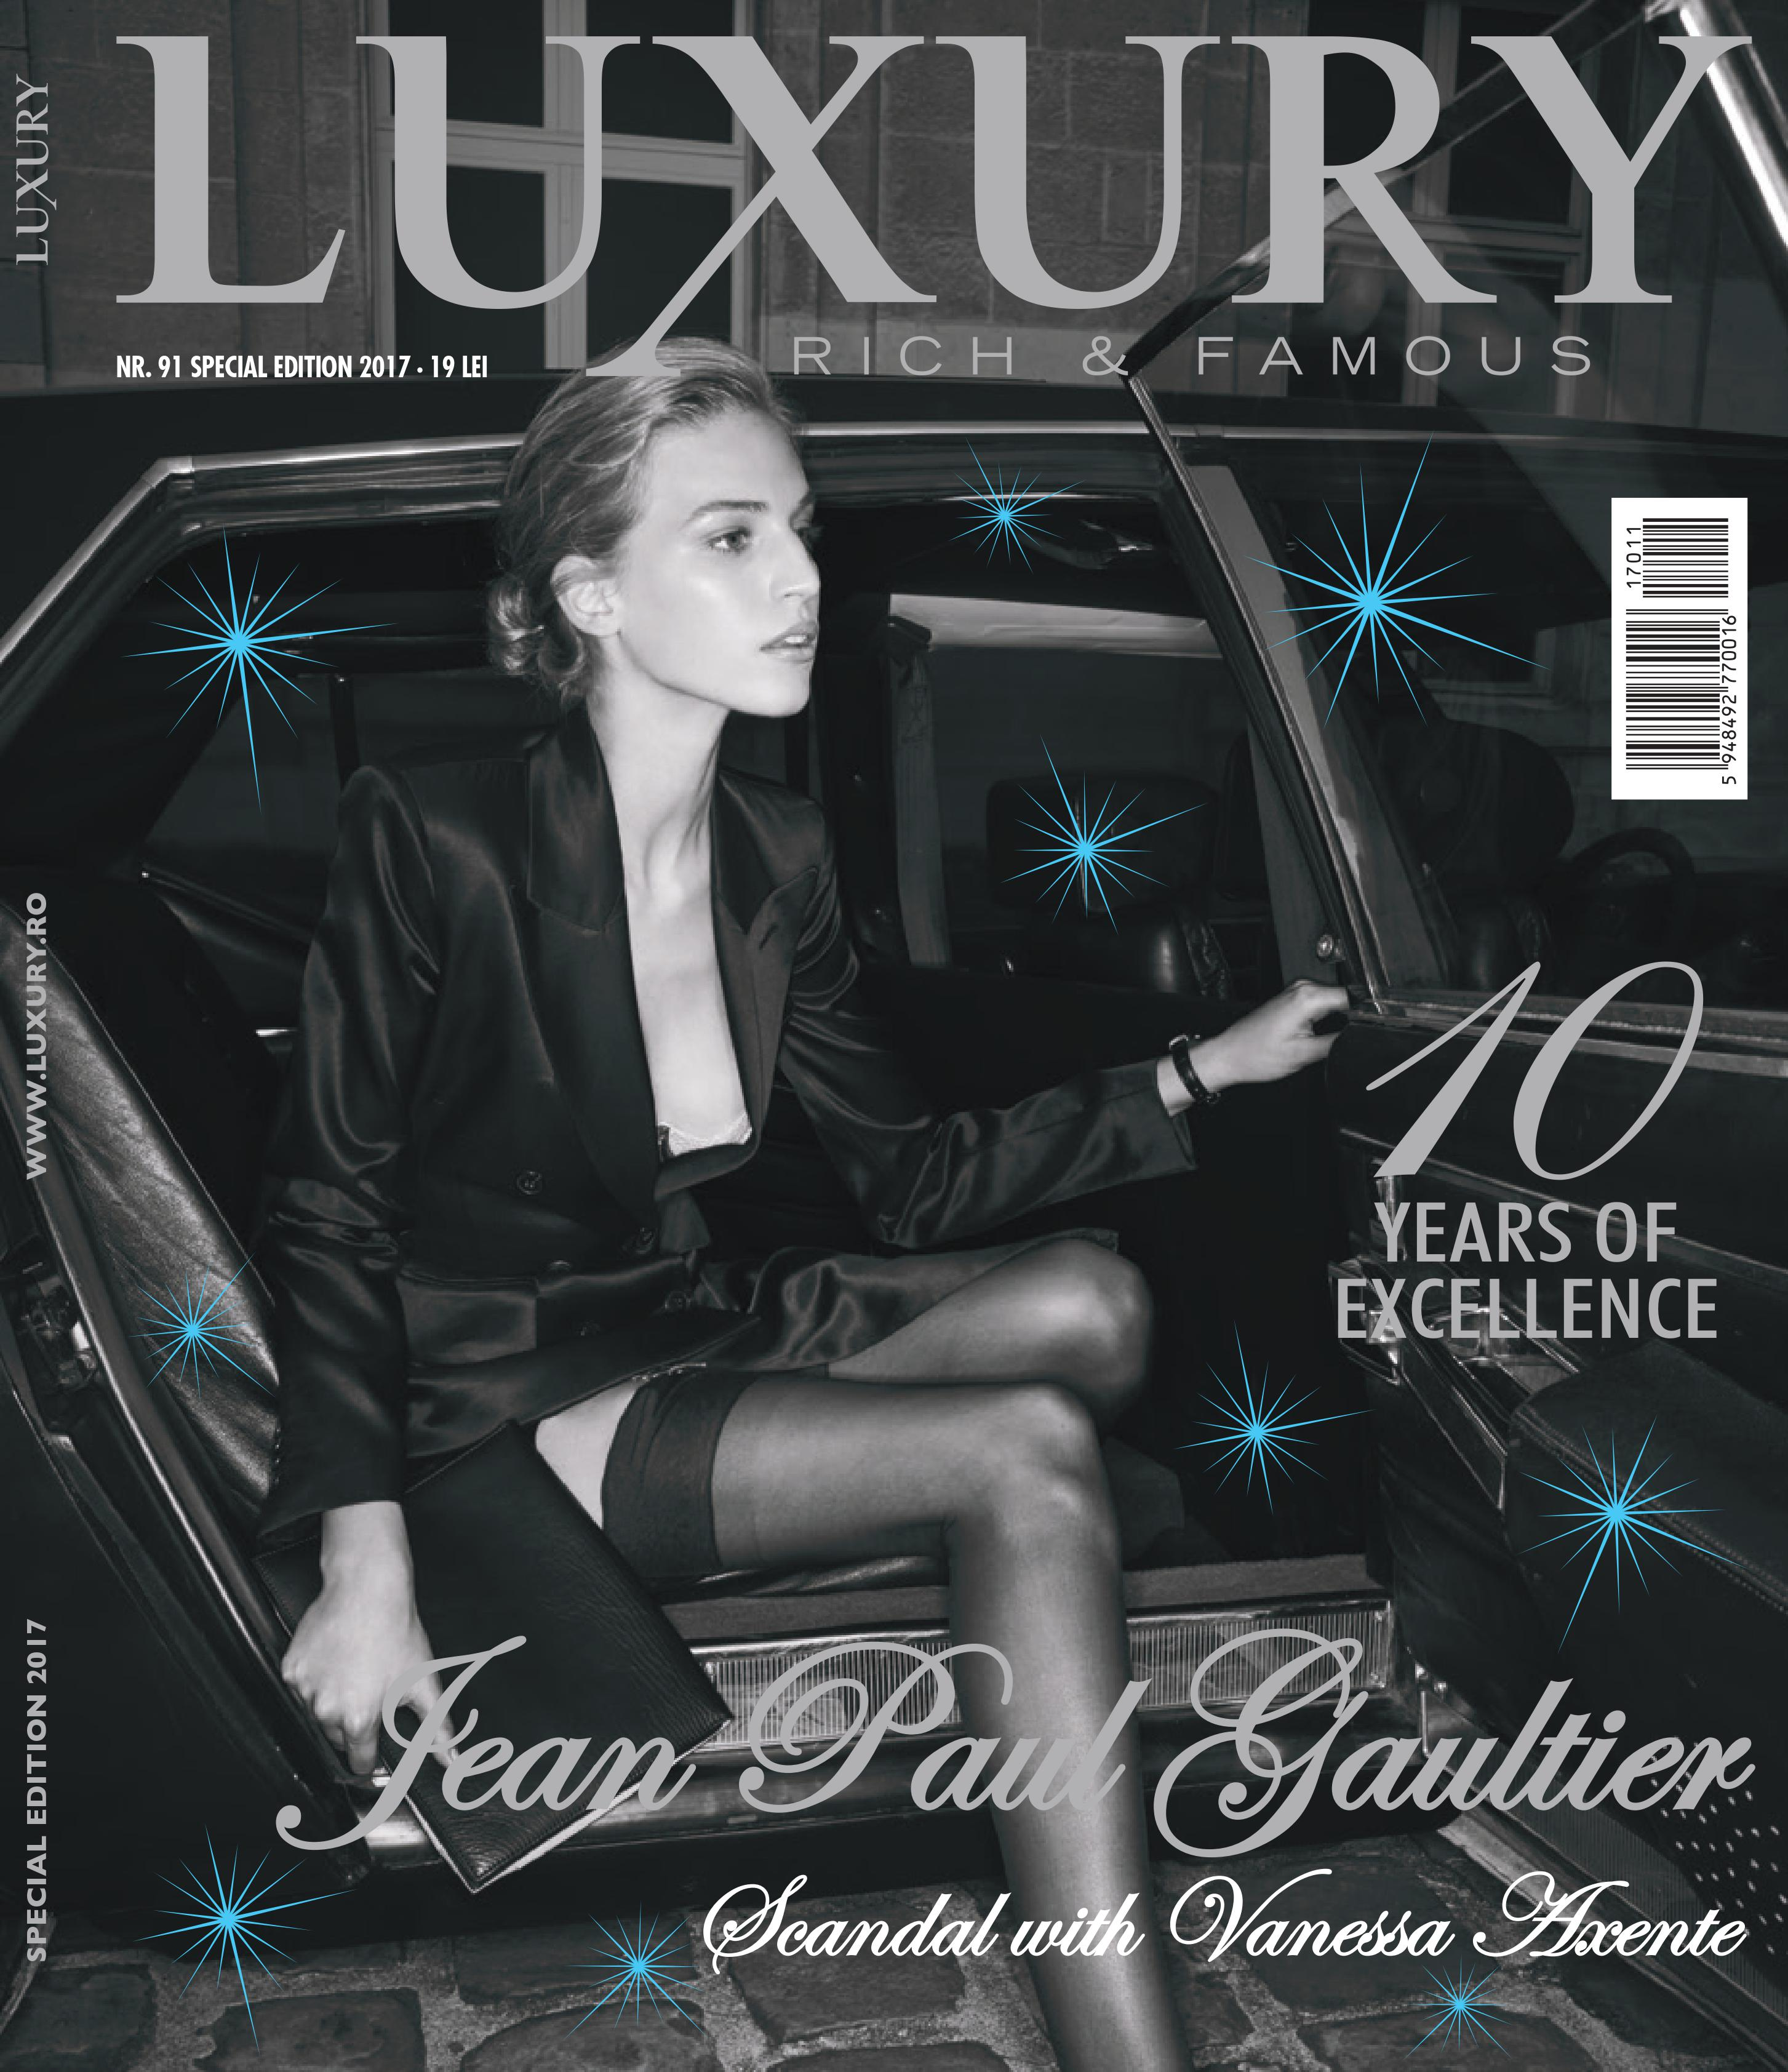 LUXURY SPECIAL EDITION 2017 – ROUMANIE